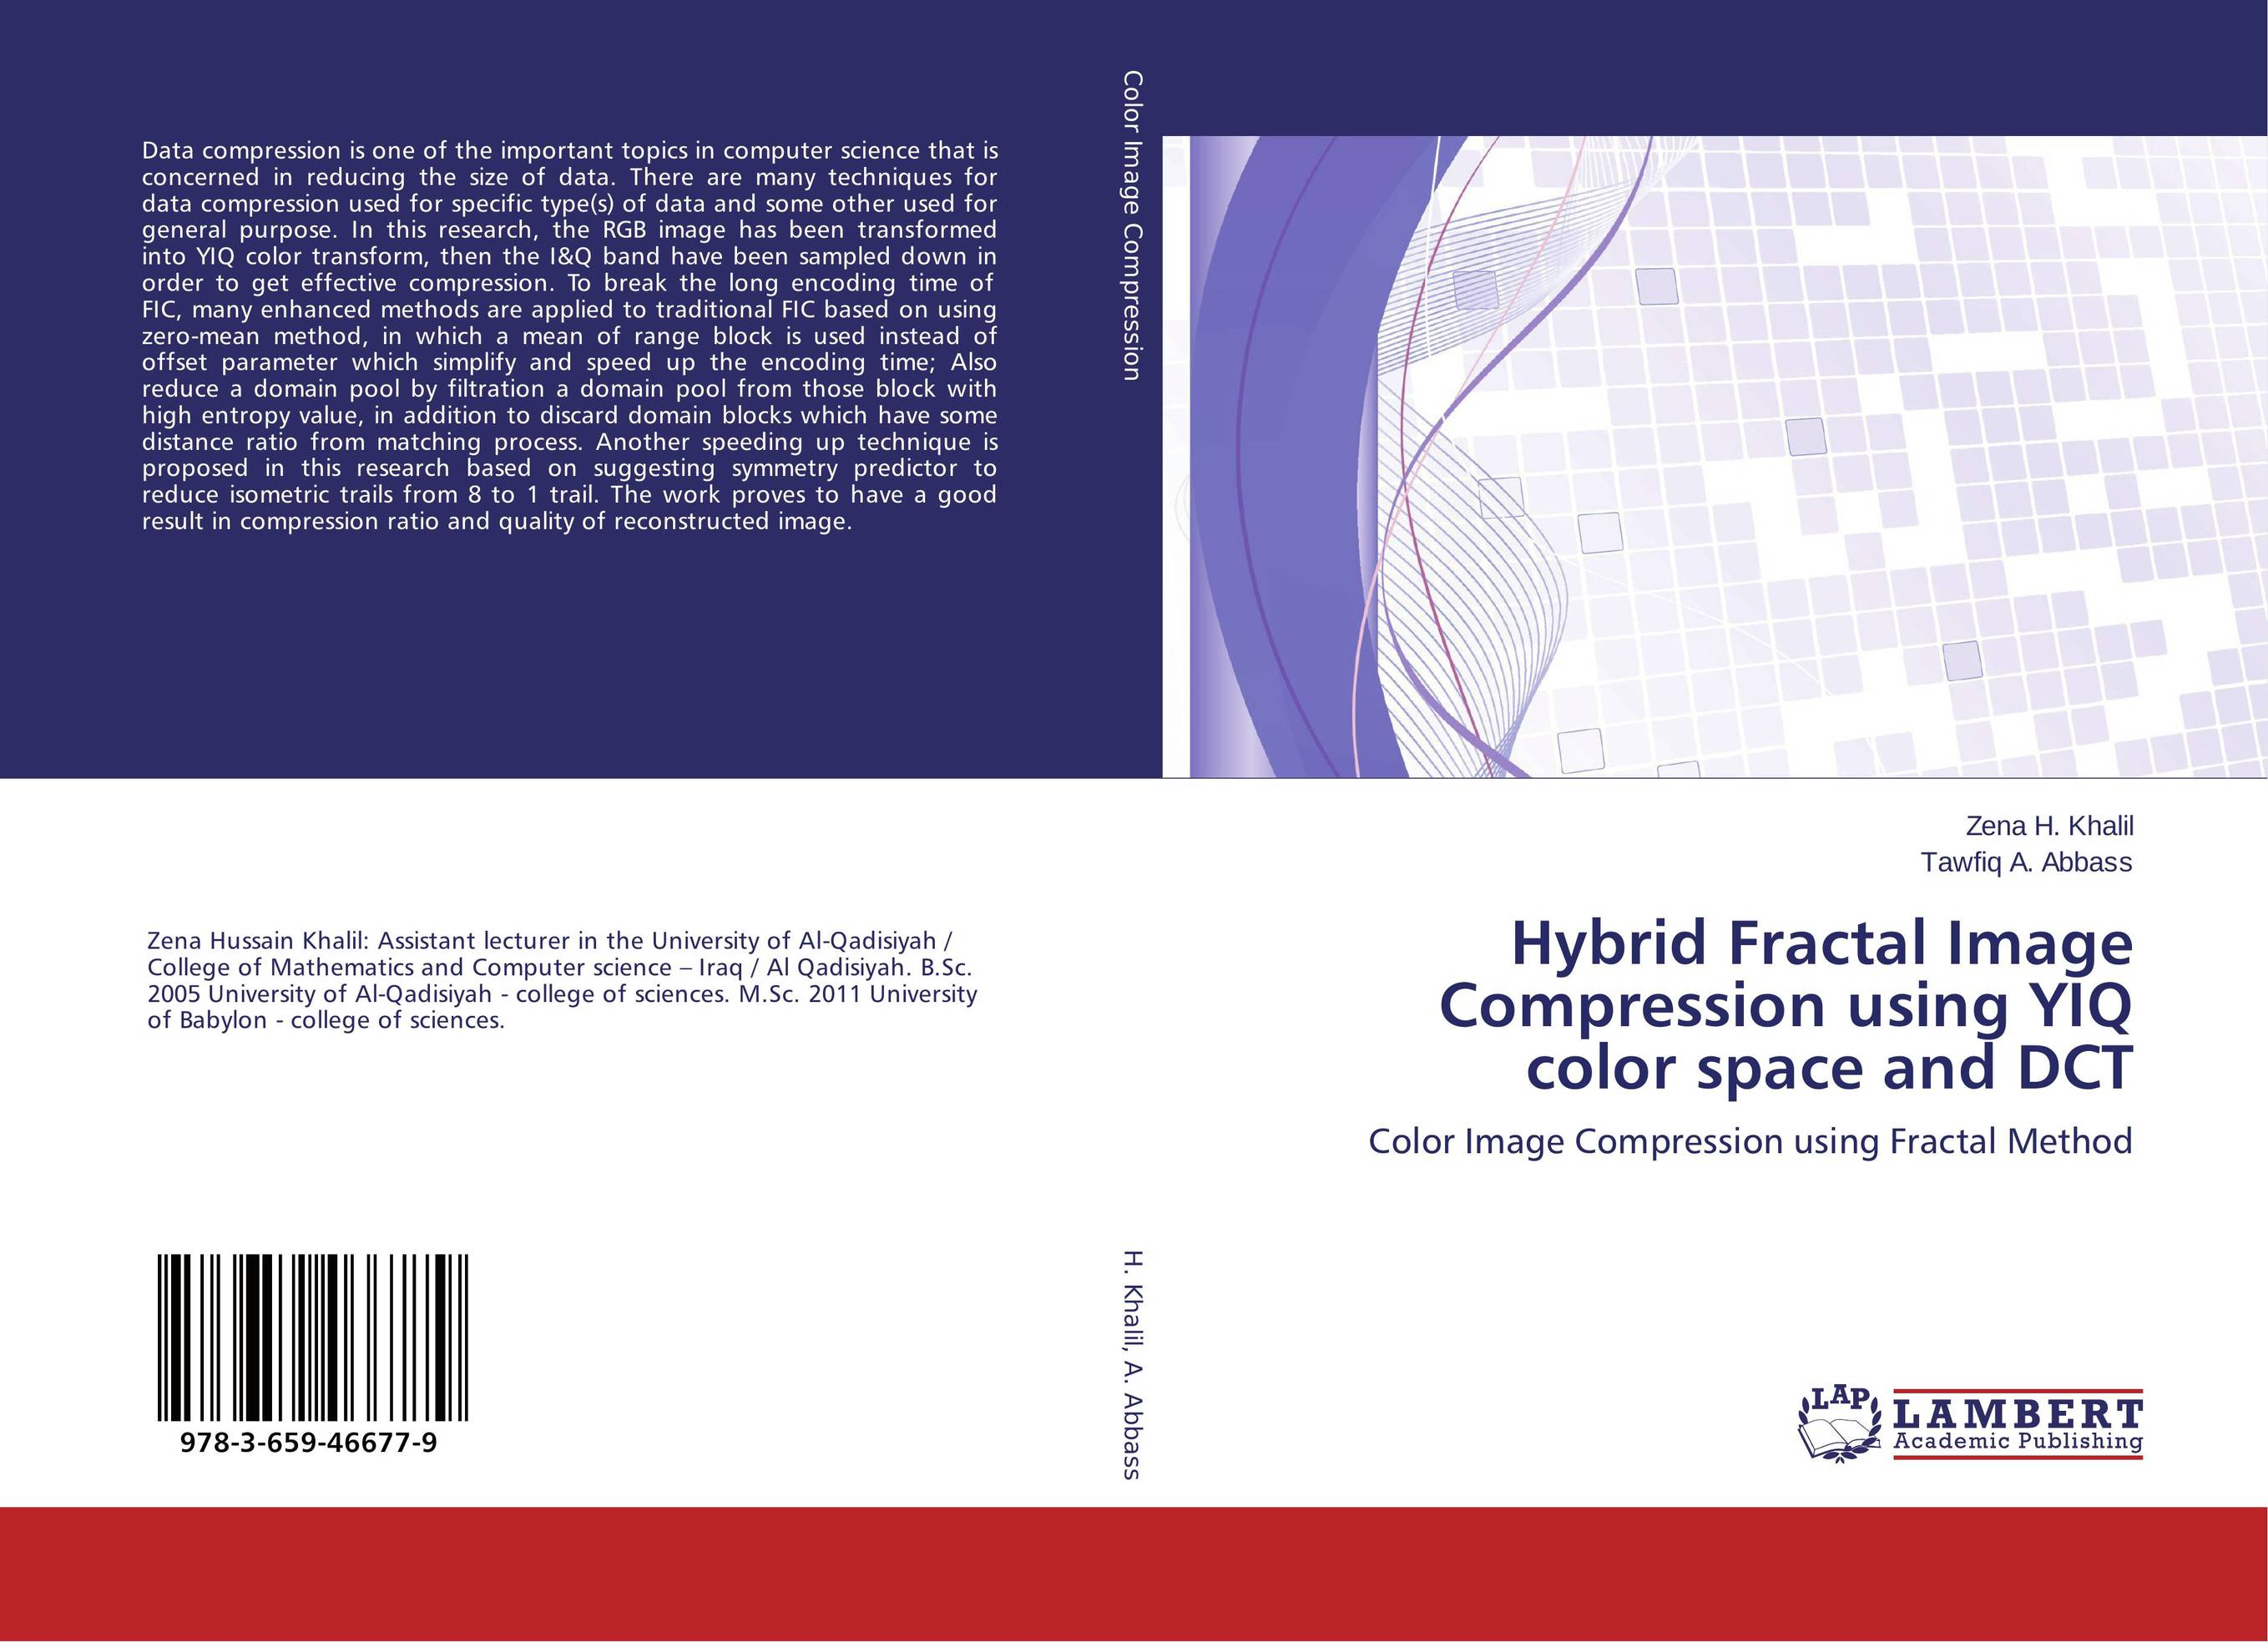 Hybrid Fractal Image Compression using YIQ color space and DCT 3d terrain data compression using wavelets